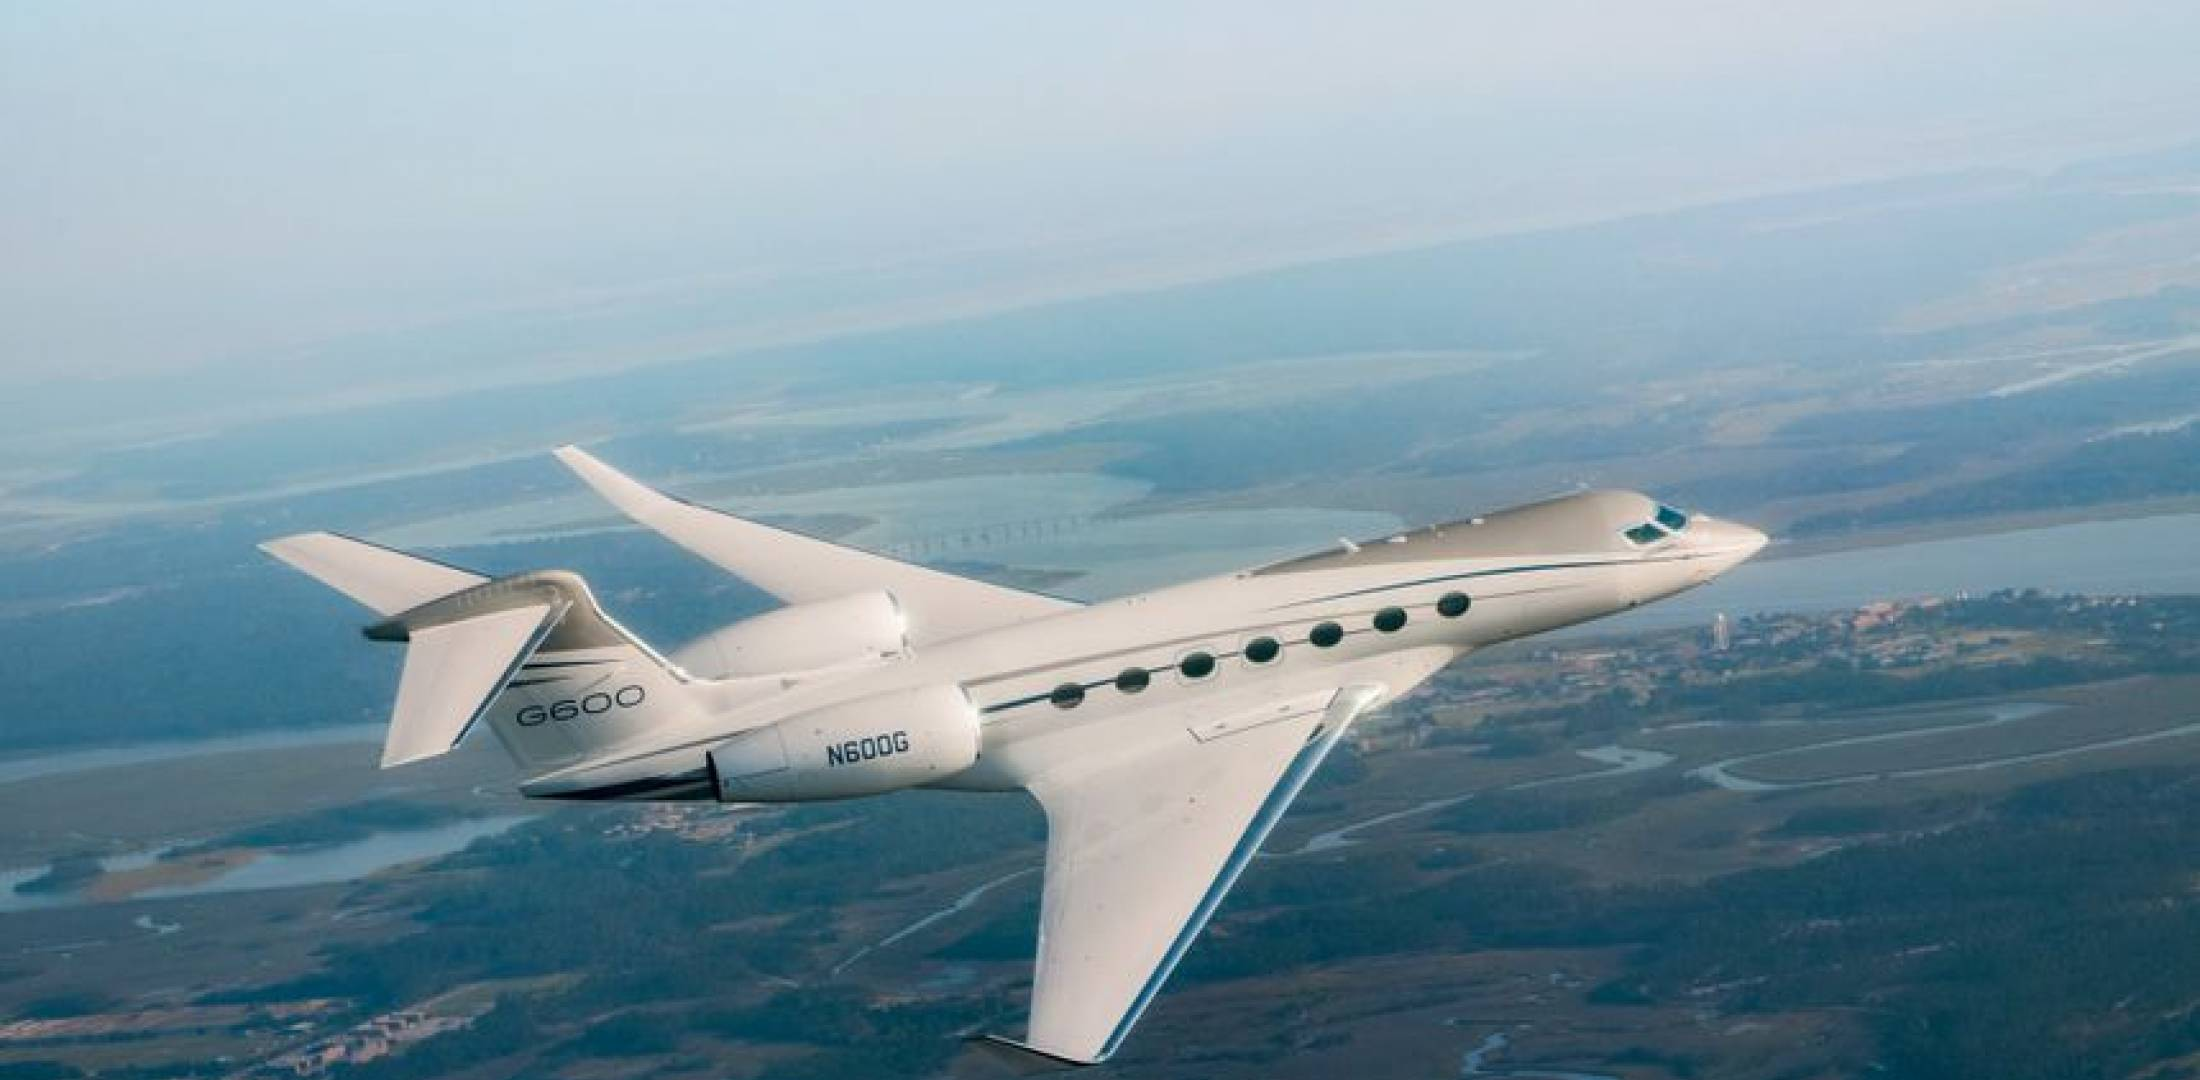 The G600 is anticipated to be certified later this year.